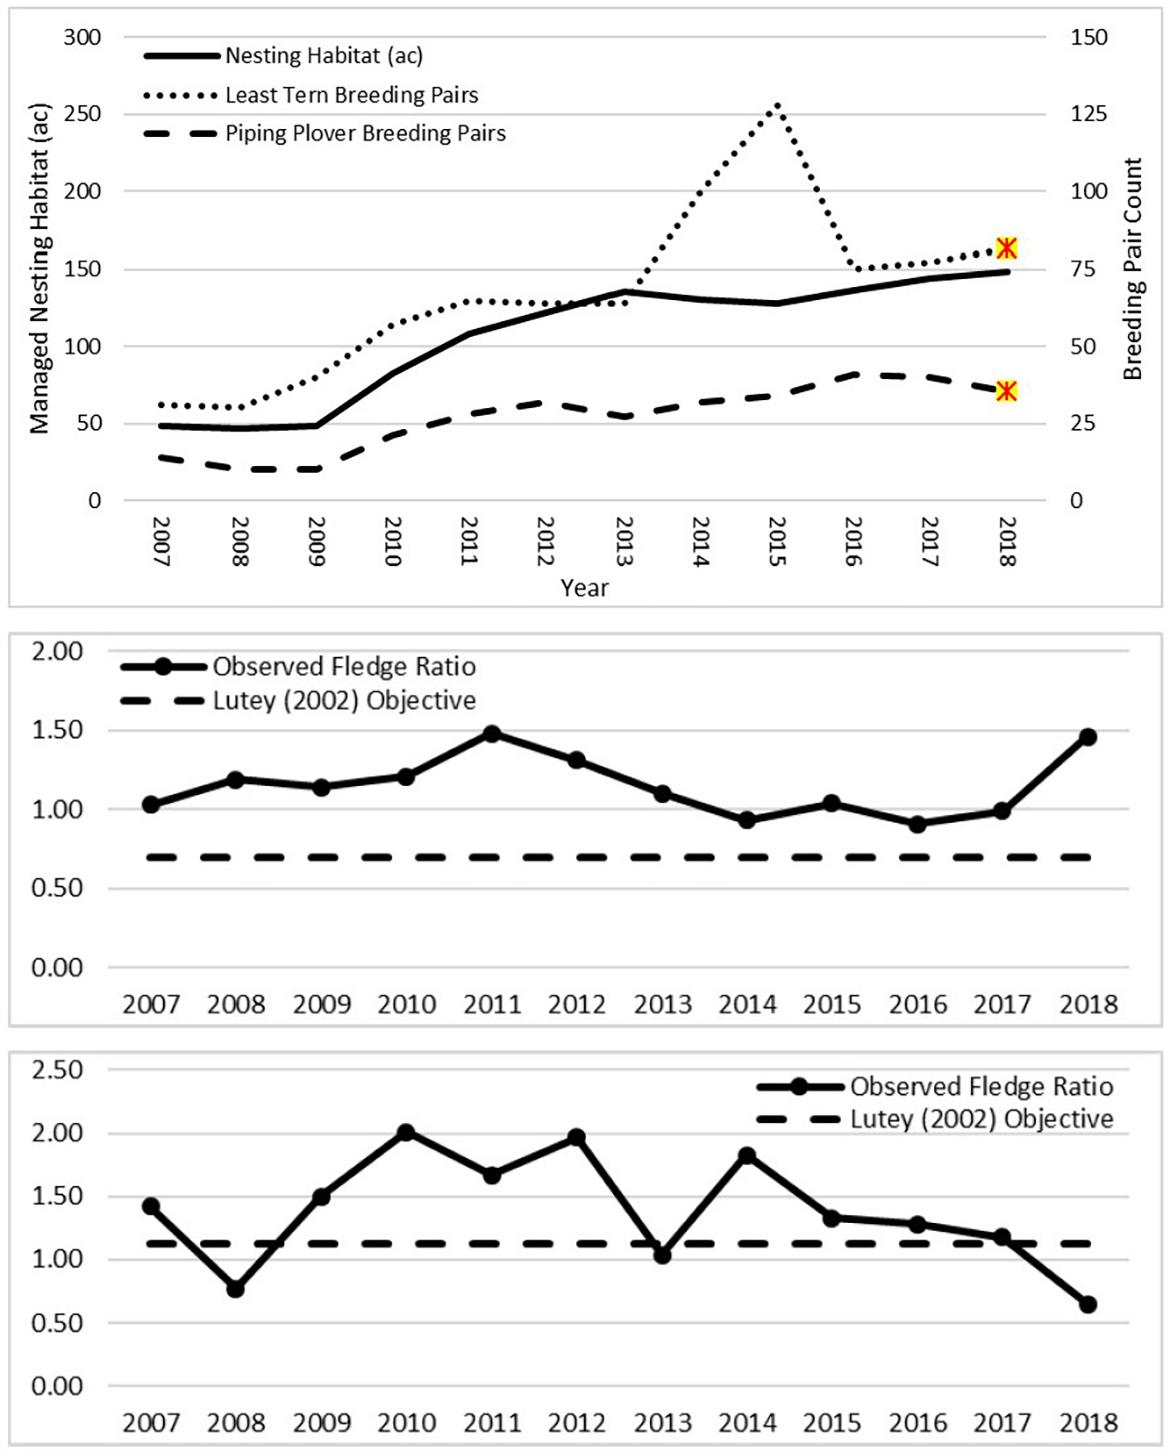 Least tern and piping plover breeding pair counts and productivity, 2001-2018.